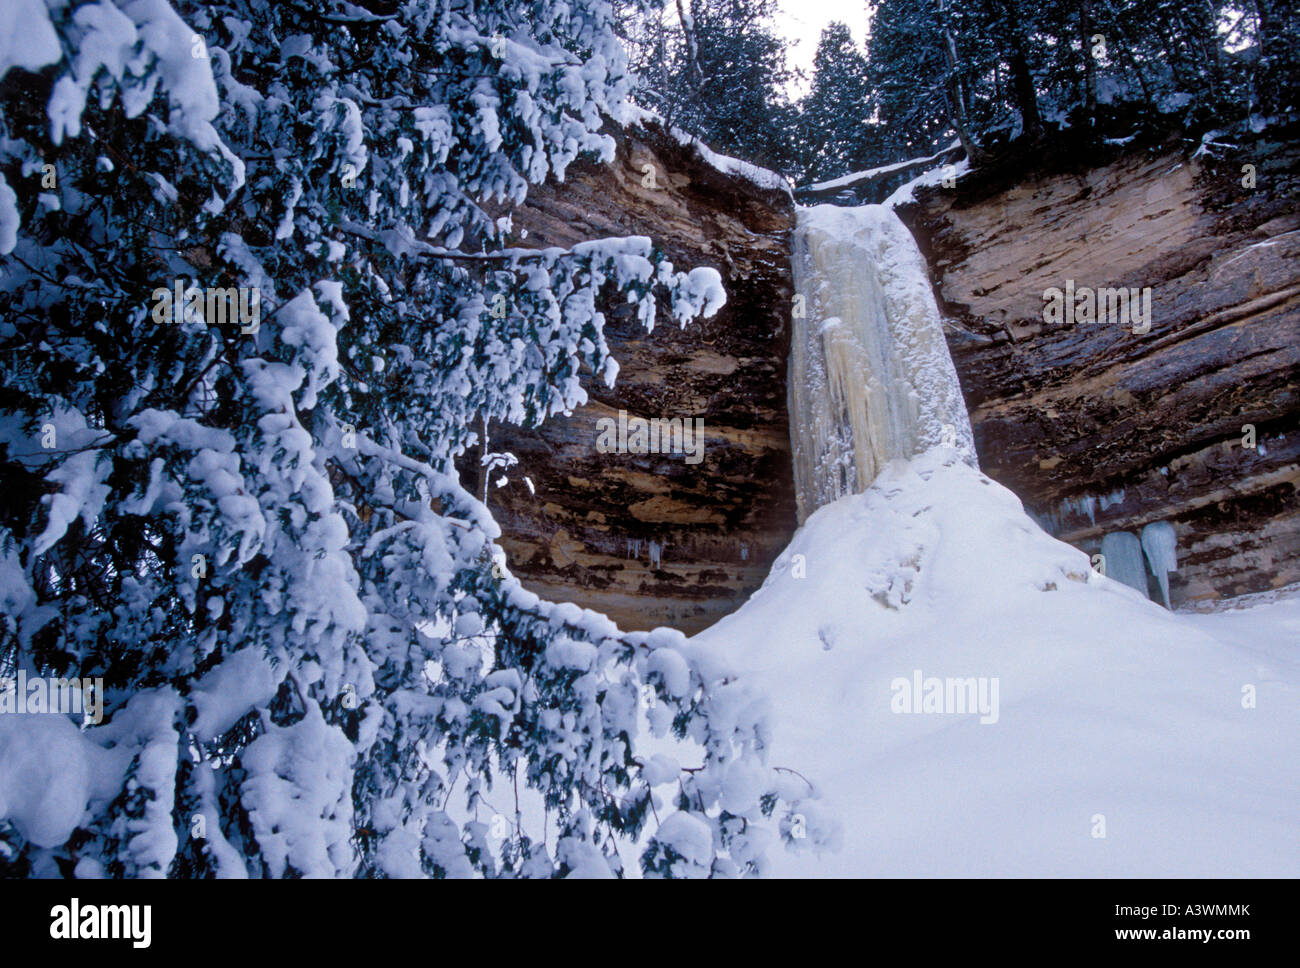 Frozen Munising Falls In Winter In Pictured Rocks National Lakeshore Stock Photo Alamy